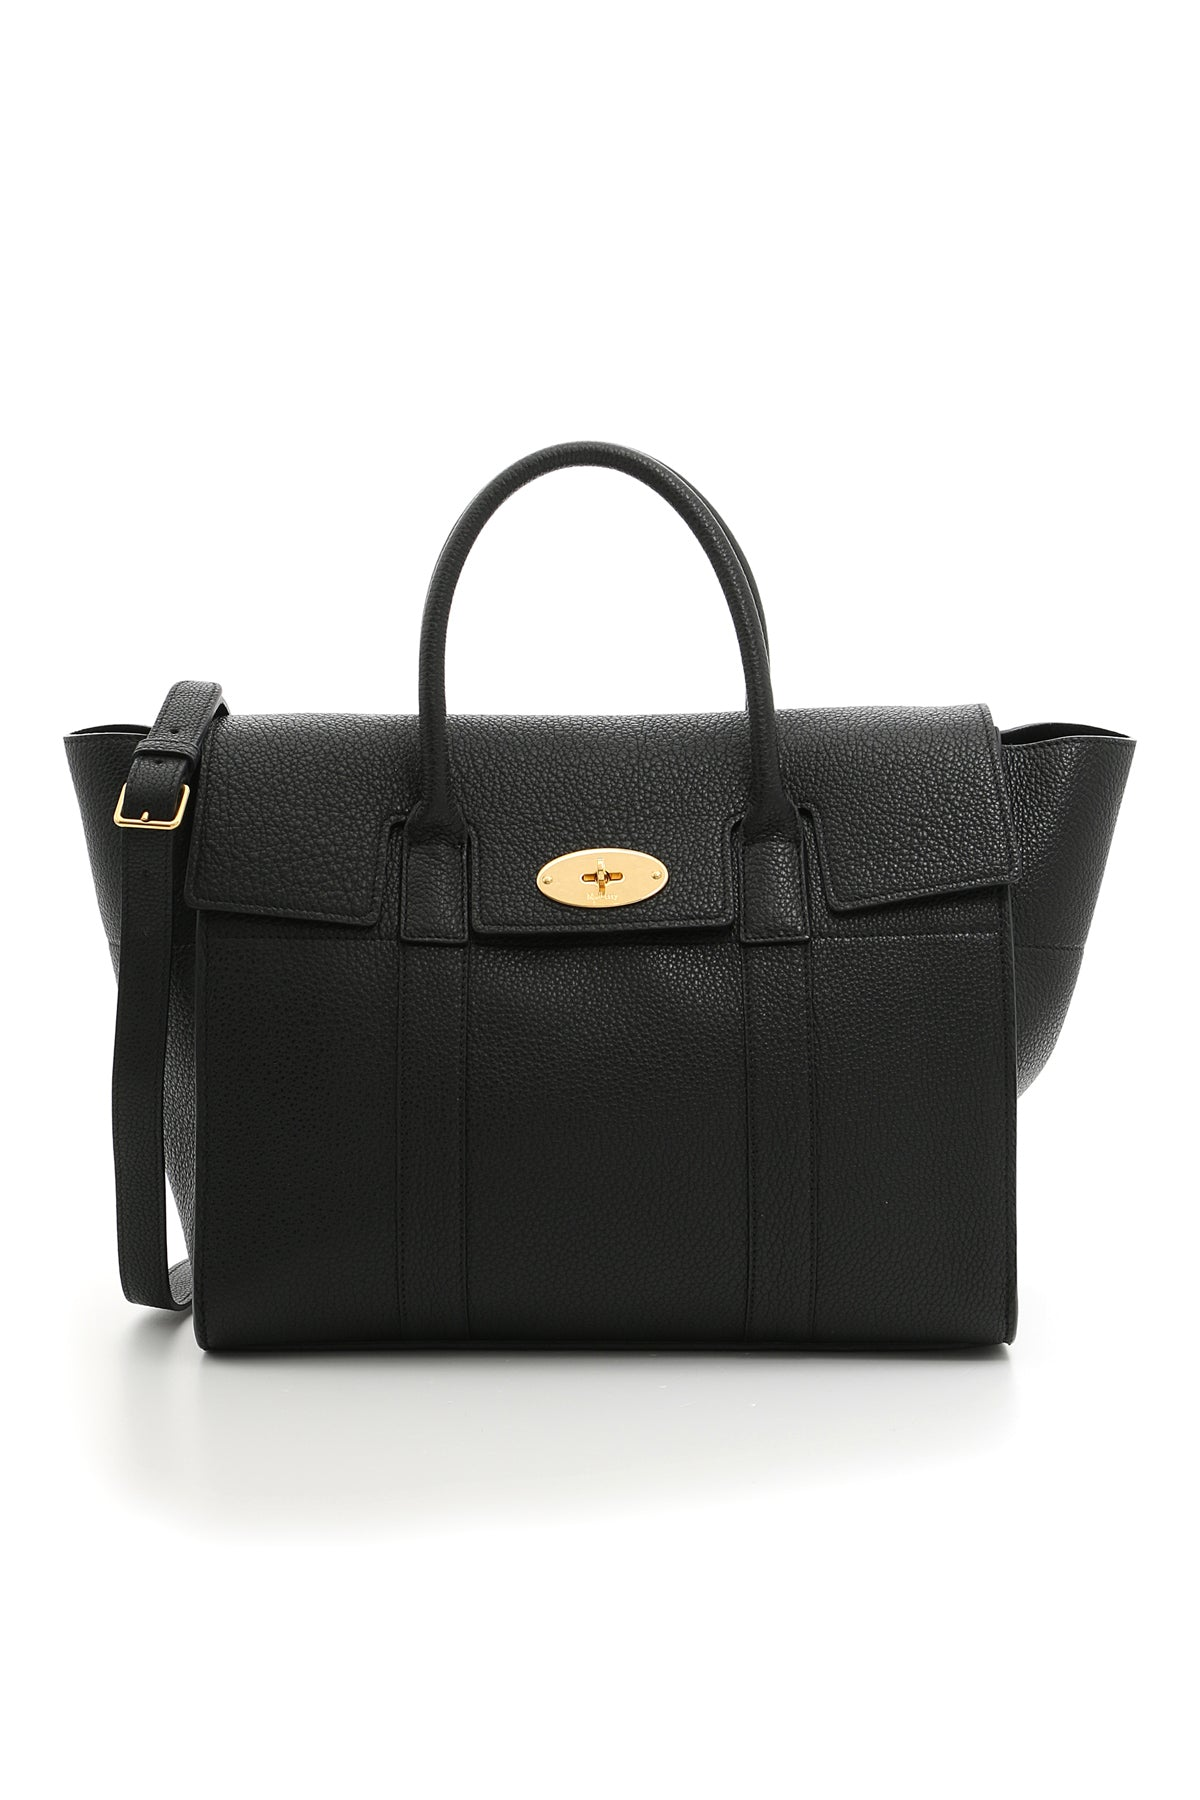 Mulberry MULBERRY BAYSWATER DOUBLE HANDLE TOTE BAG